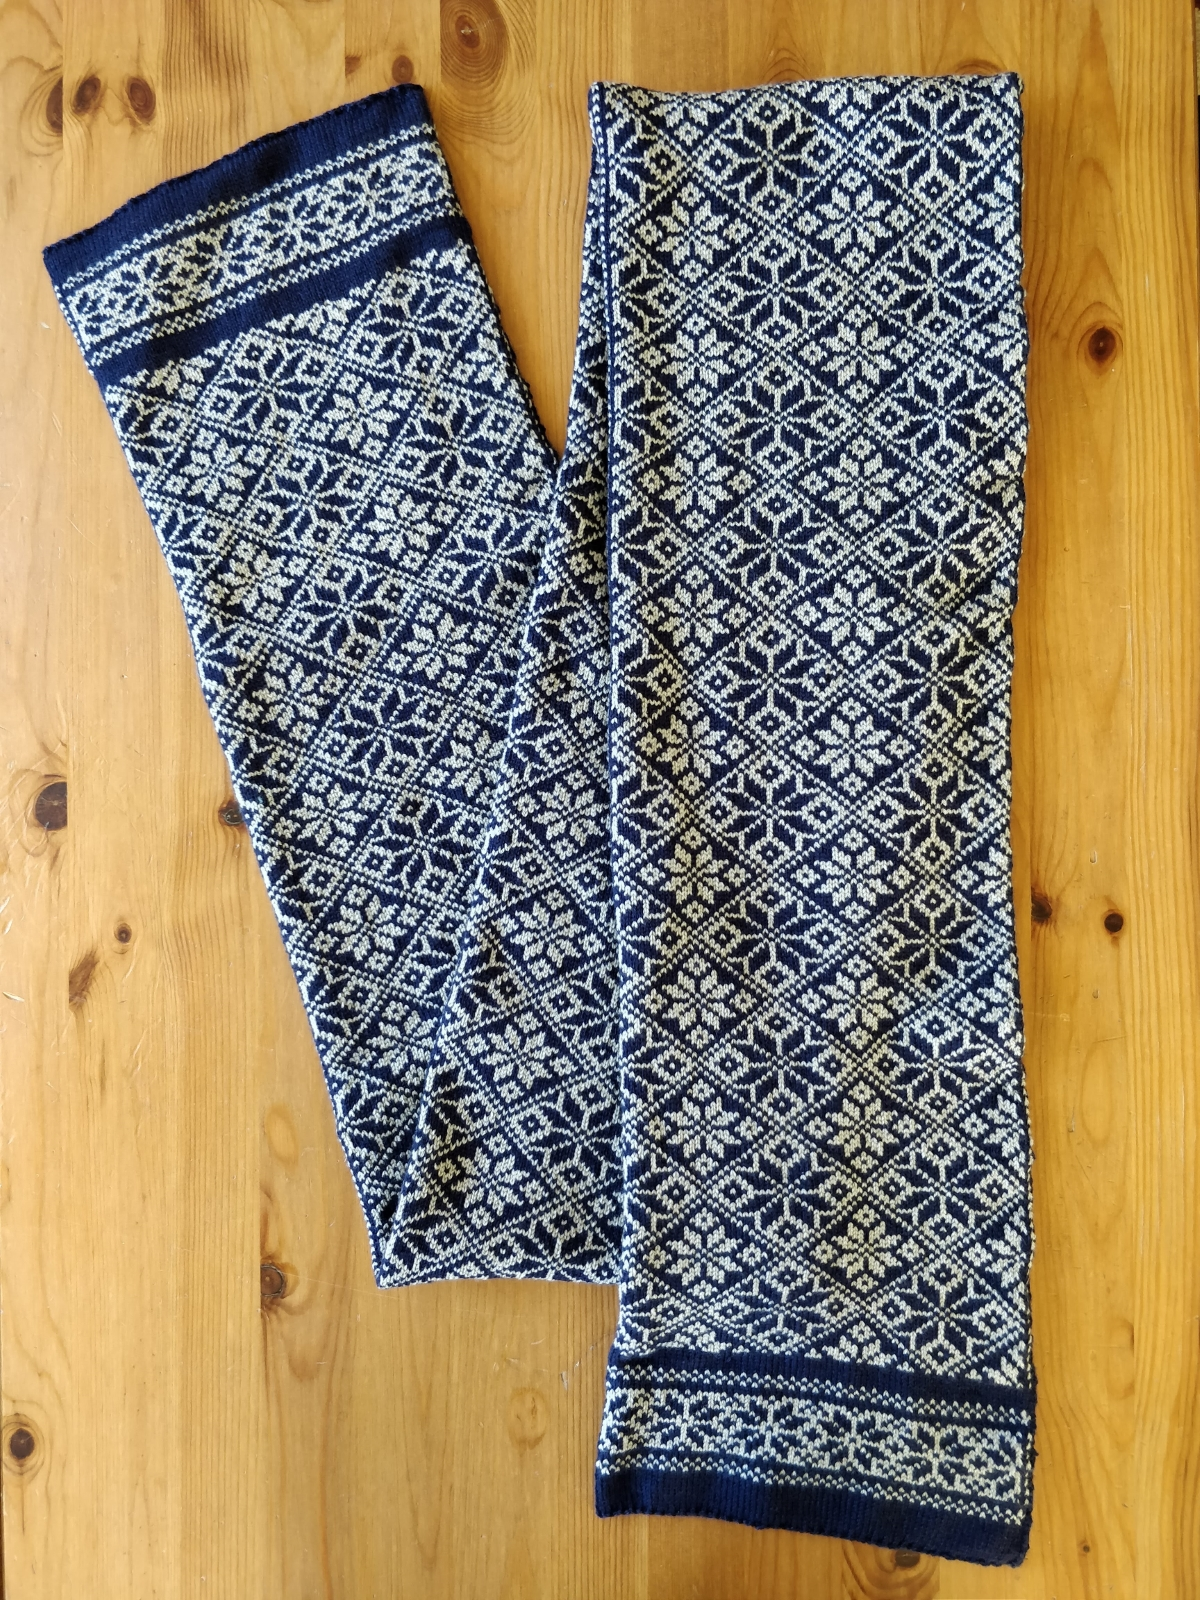 A long scarf with traditional snowflake motifs in navy blue and gray colours.